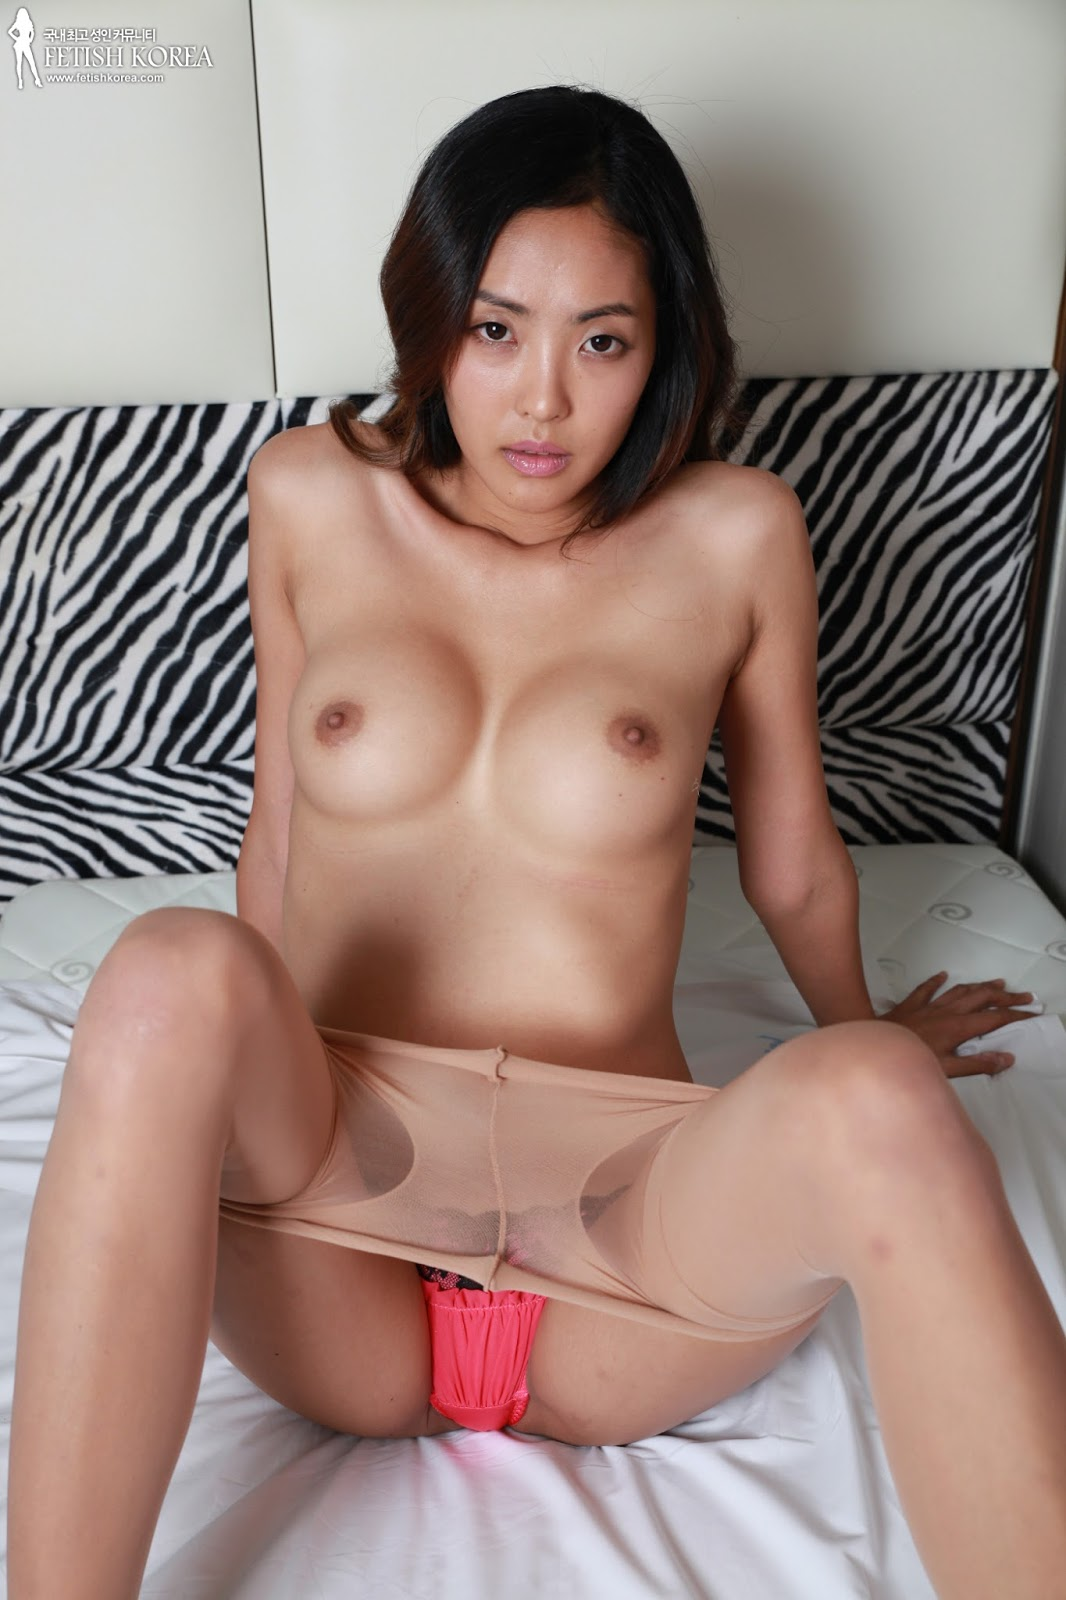 Korea big tits sweet darkhaired paisley 5